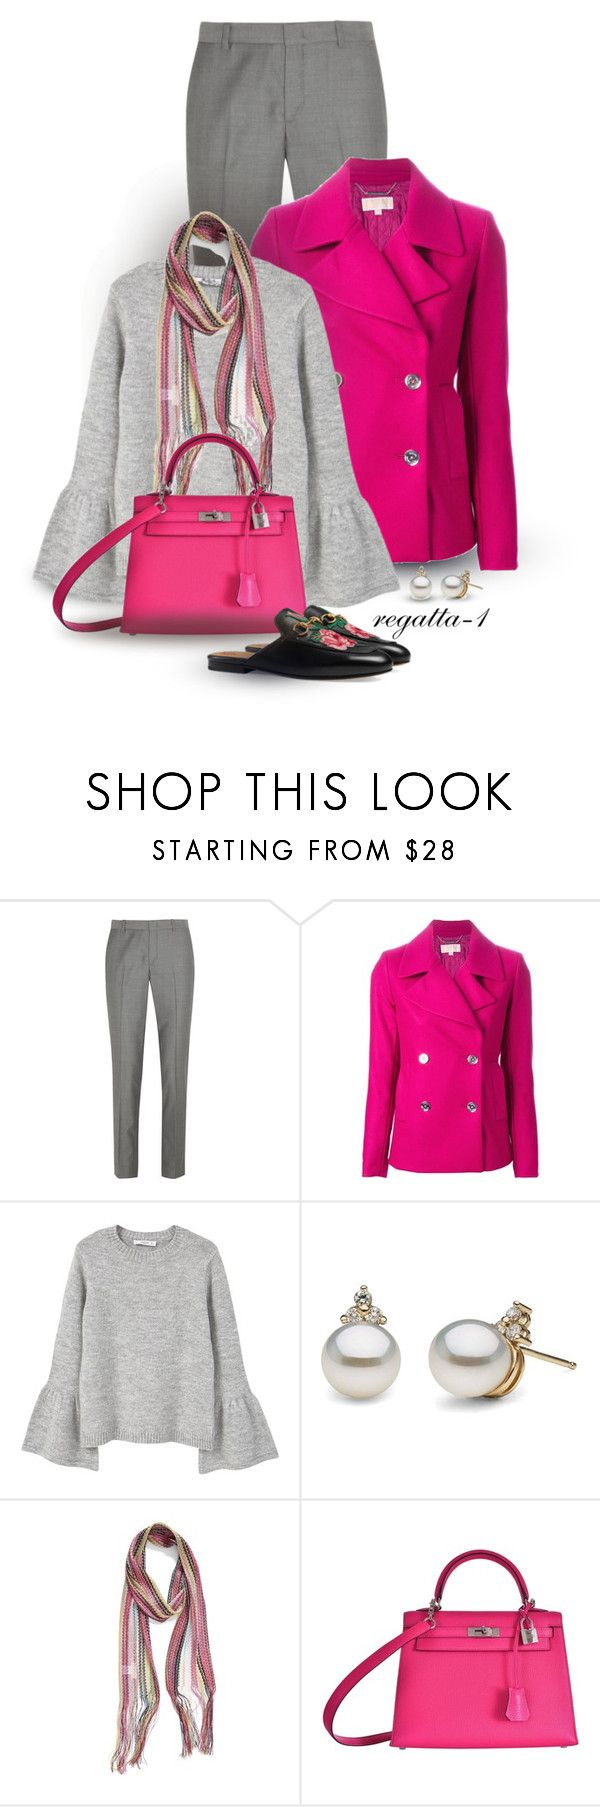 """Gray and Pink"" by regatta-1 ❤ liked on Polyvore featuring Joseph, MICHAEL Michael Kors, MANGO, Collection XIIX, Hermès, Gucci, Pink, gray and polyvoreeditorial"